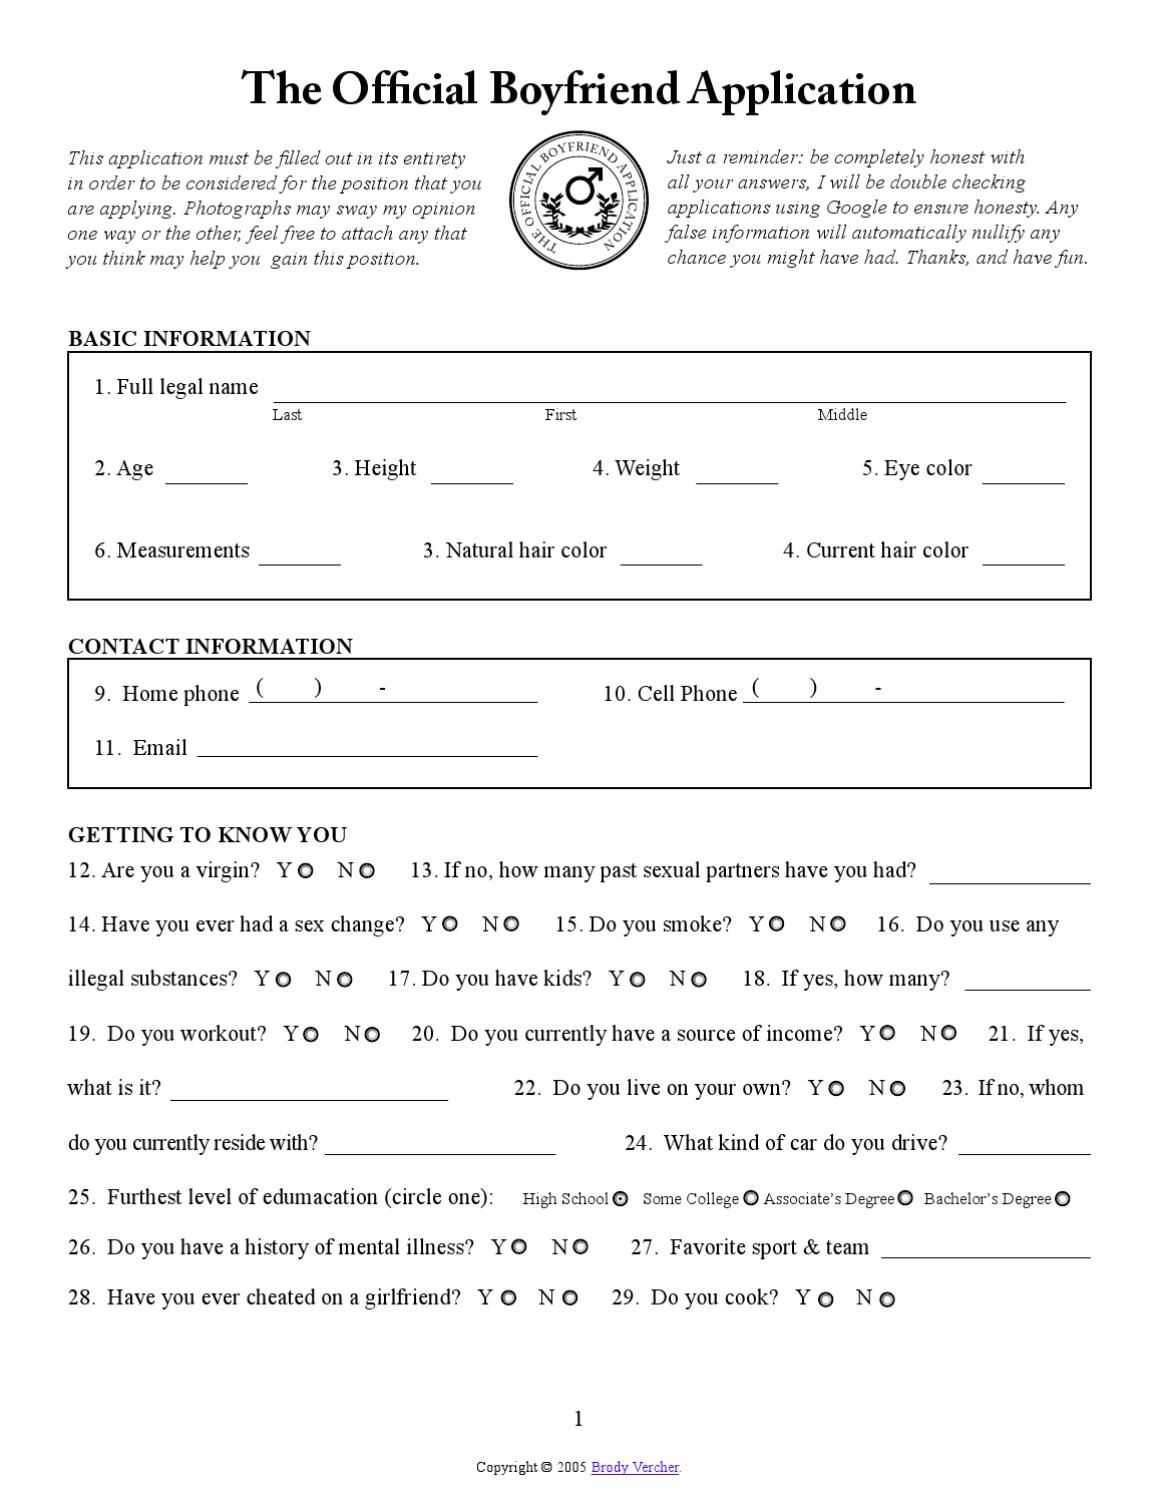 Sample Boyfriend Application Forms - 7 Free Documents in Word PDF